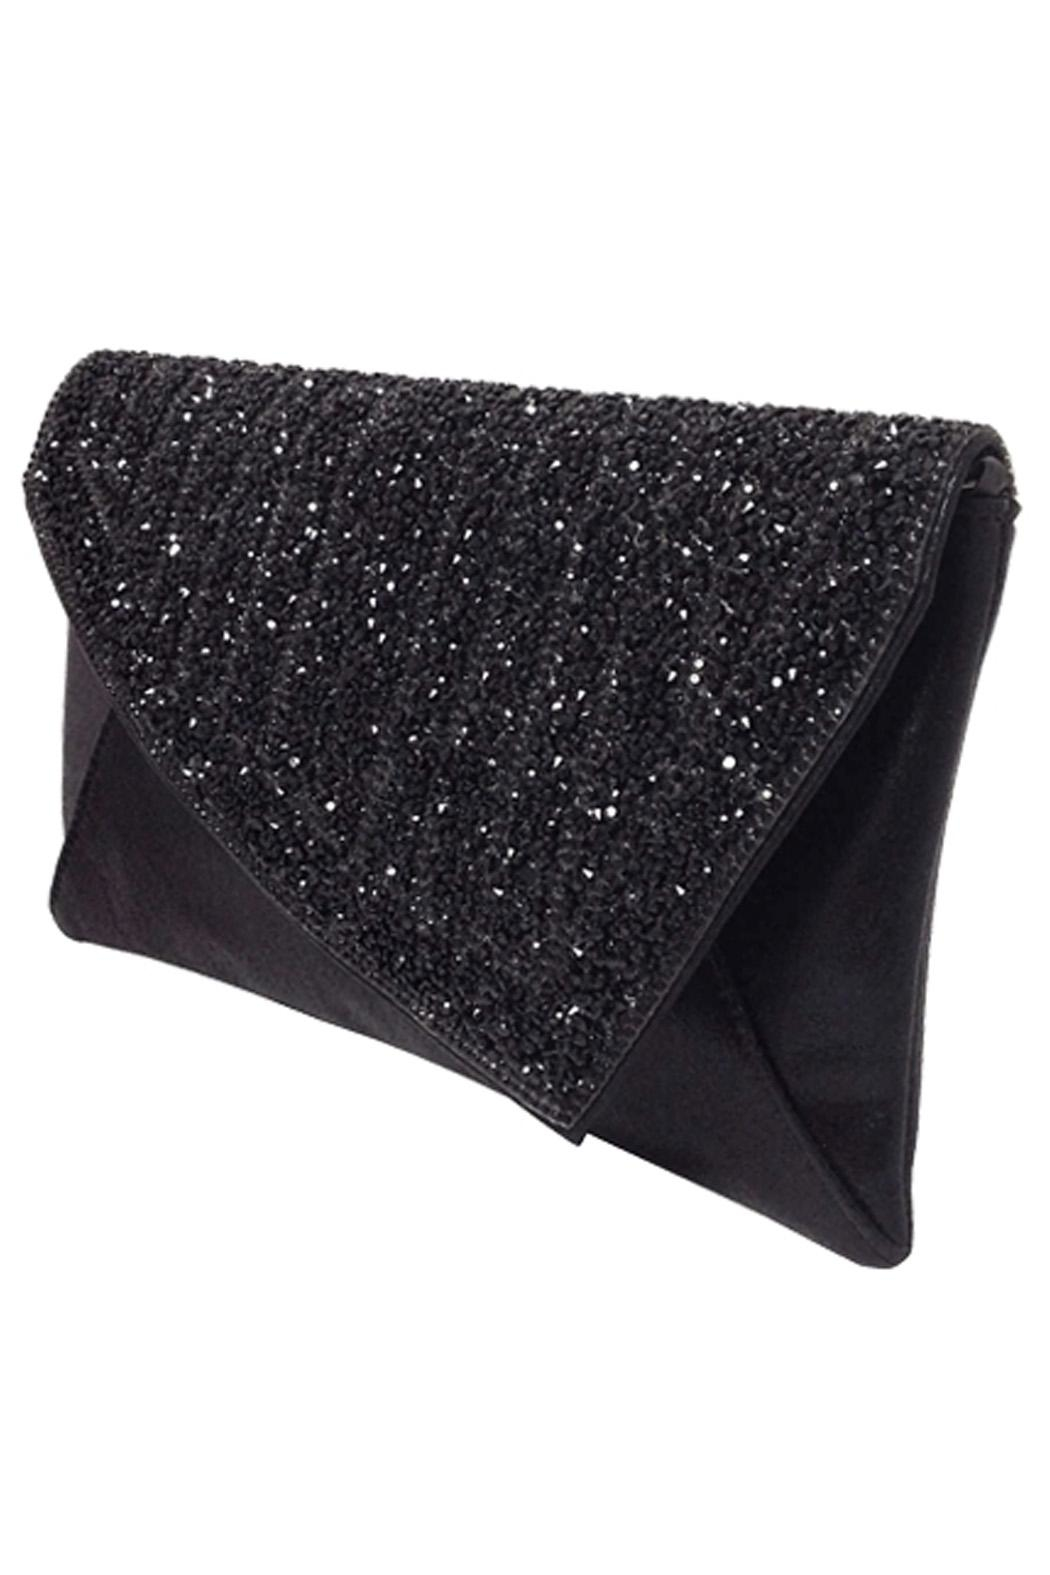 Wild Lilies Jewelry  Black Crystal Clutch - Front Full Image